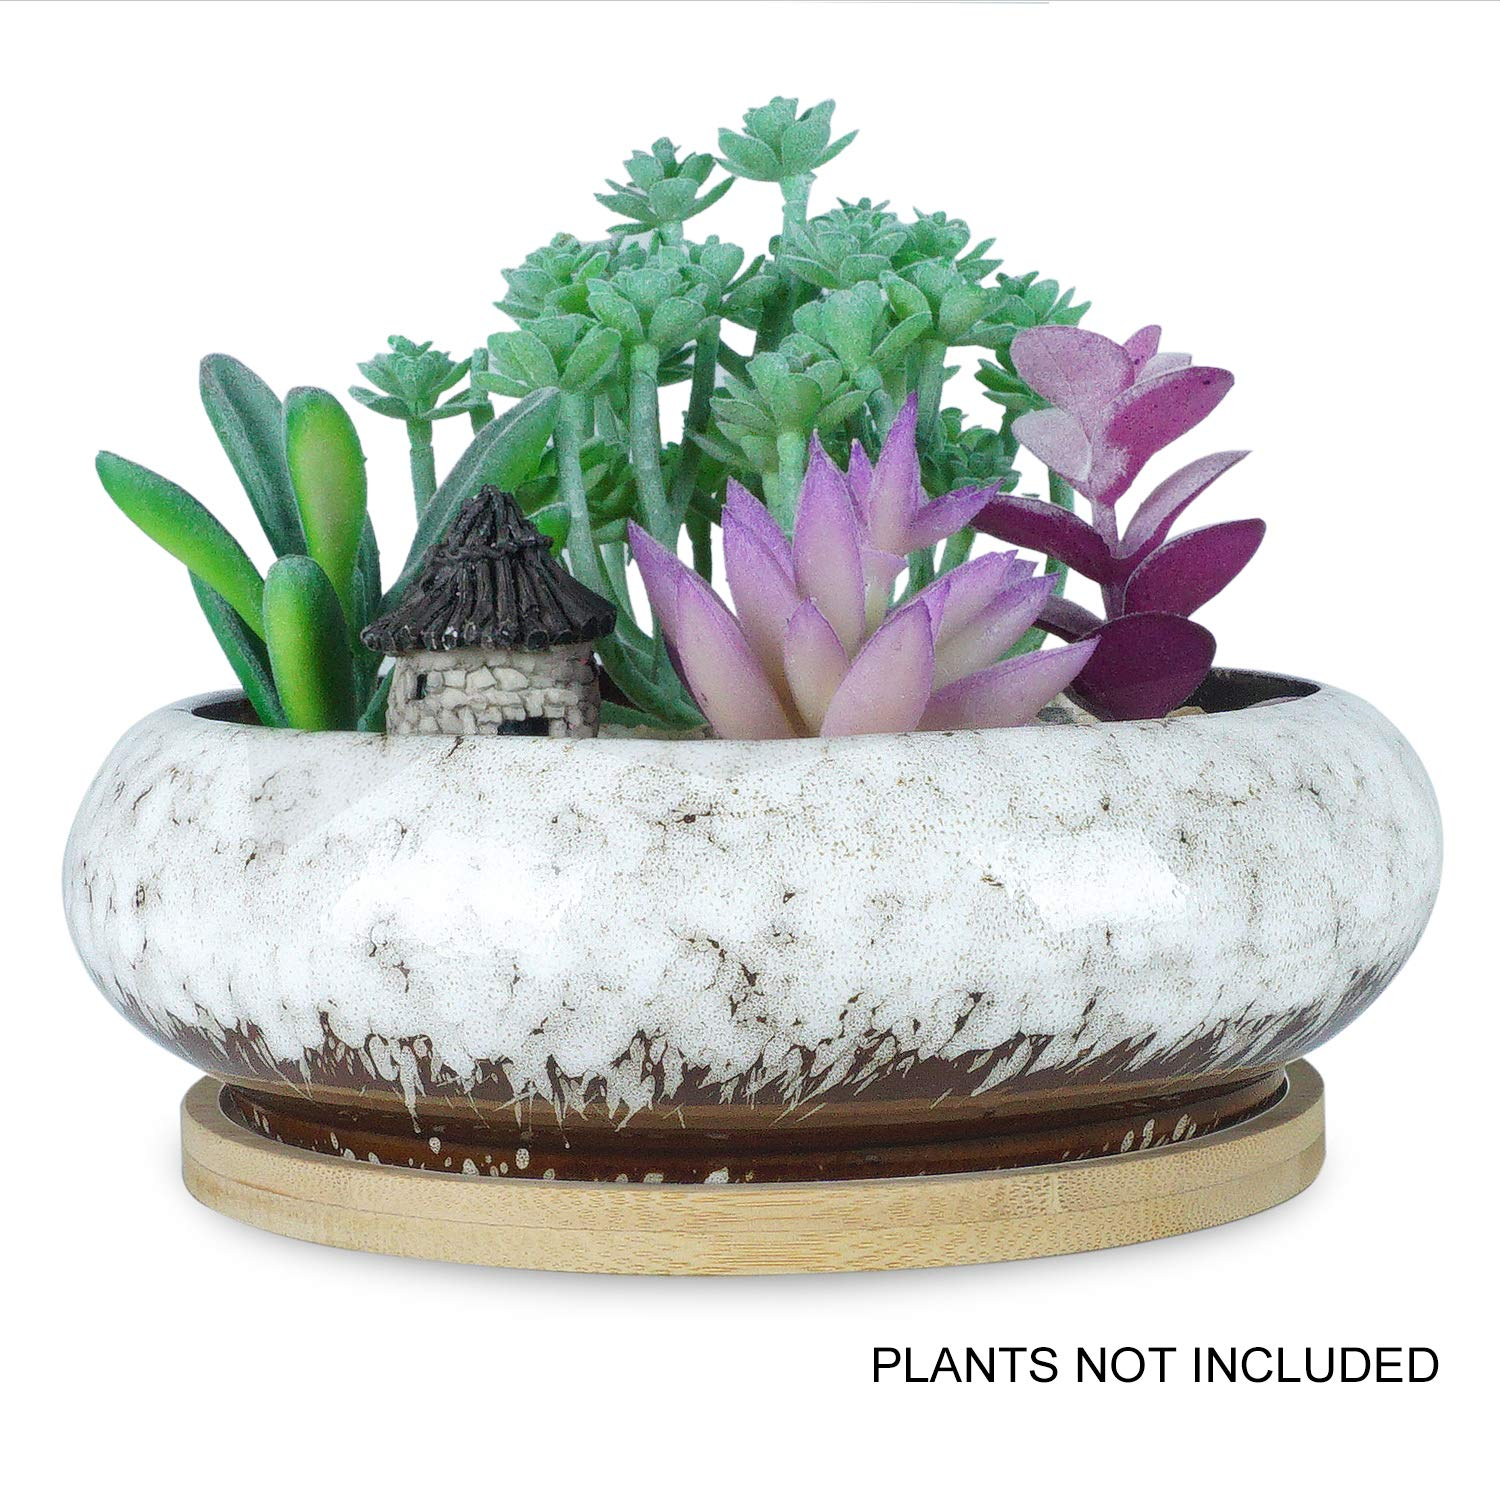 7.3 inch Round Succulent Planter Pots with Drainage Hole Bonsai Pots Garden Decorative Cactus Stand Ceramic Glazed Flower Container White, with Bamboo Tray